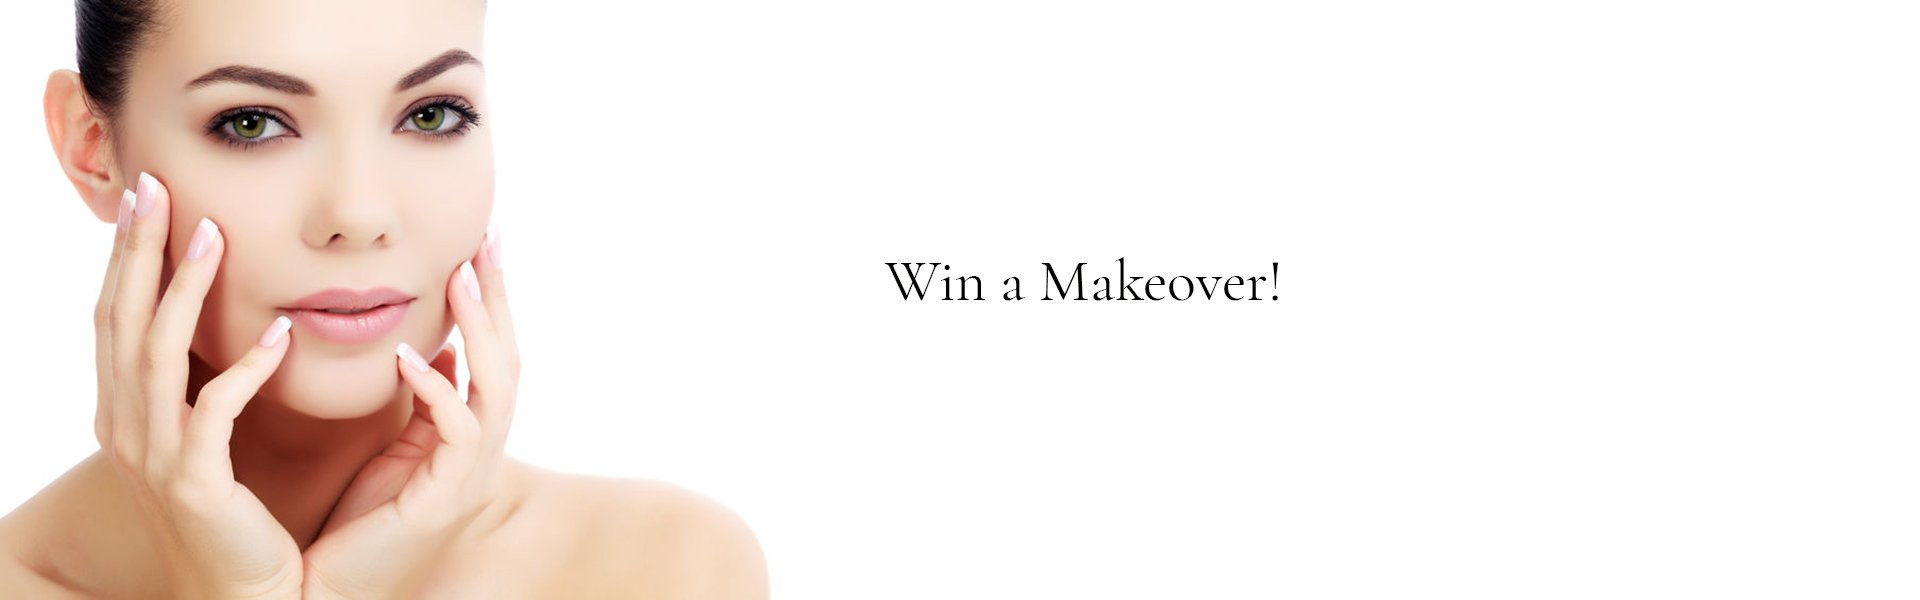 Win a Makeover Segais Wantage & Didcot Salons